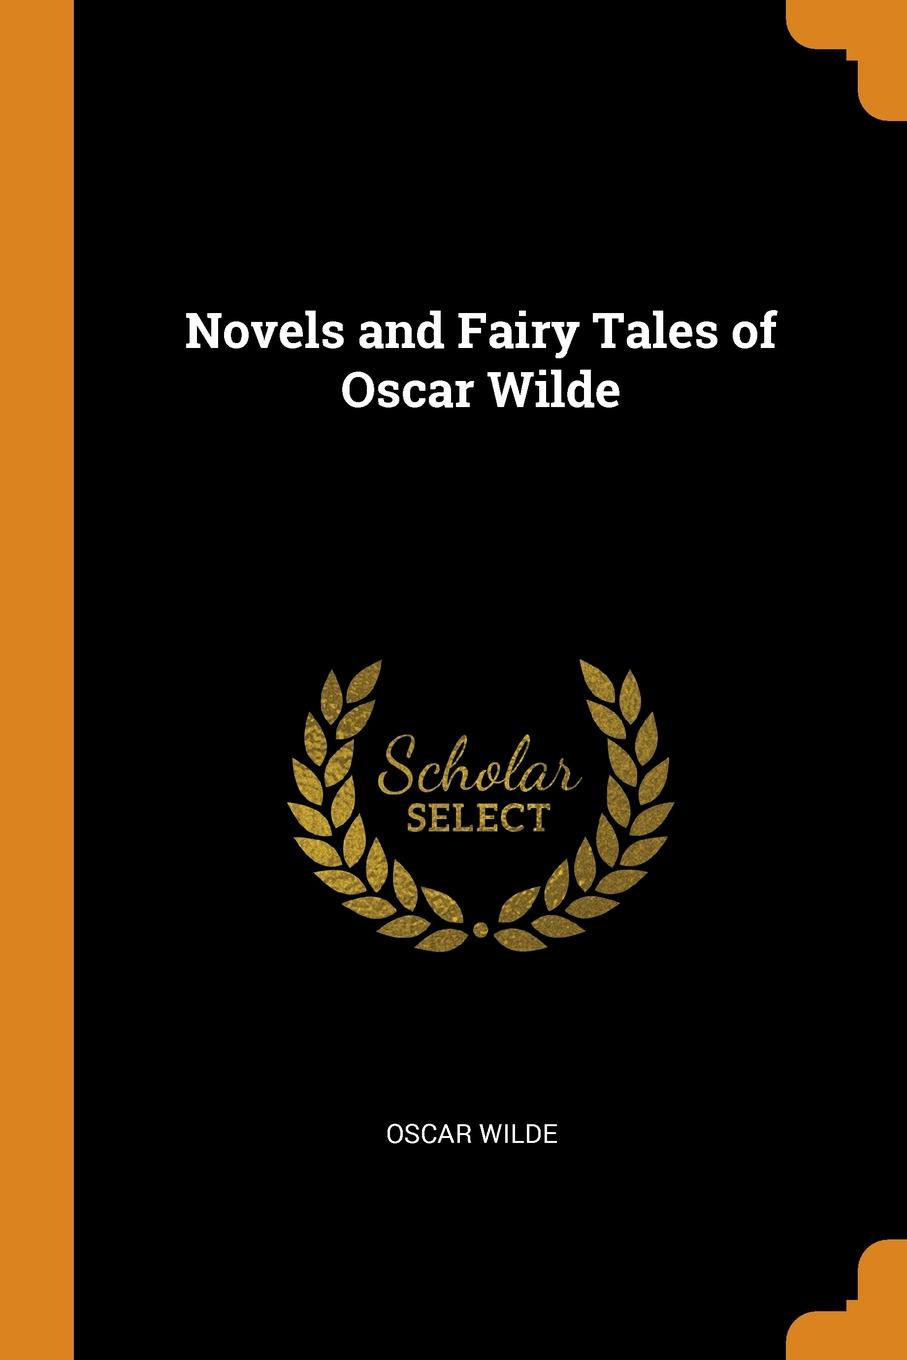 Oscar Wilde Novels and Fairy Tales of Oscar Wilde